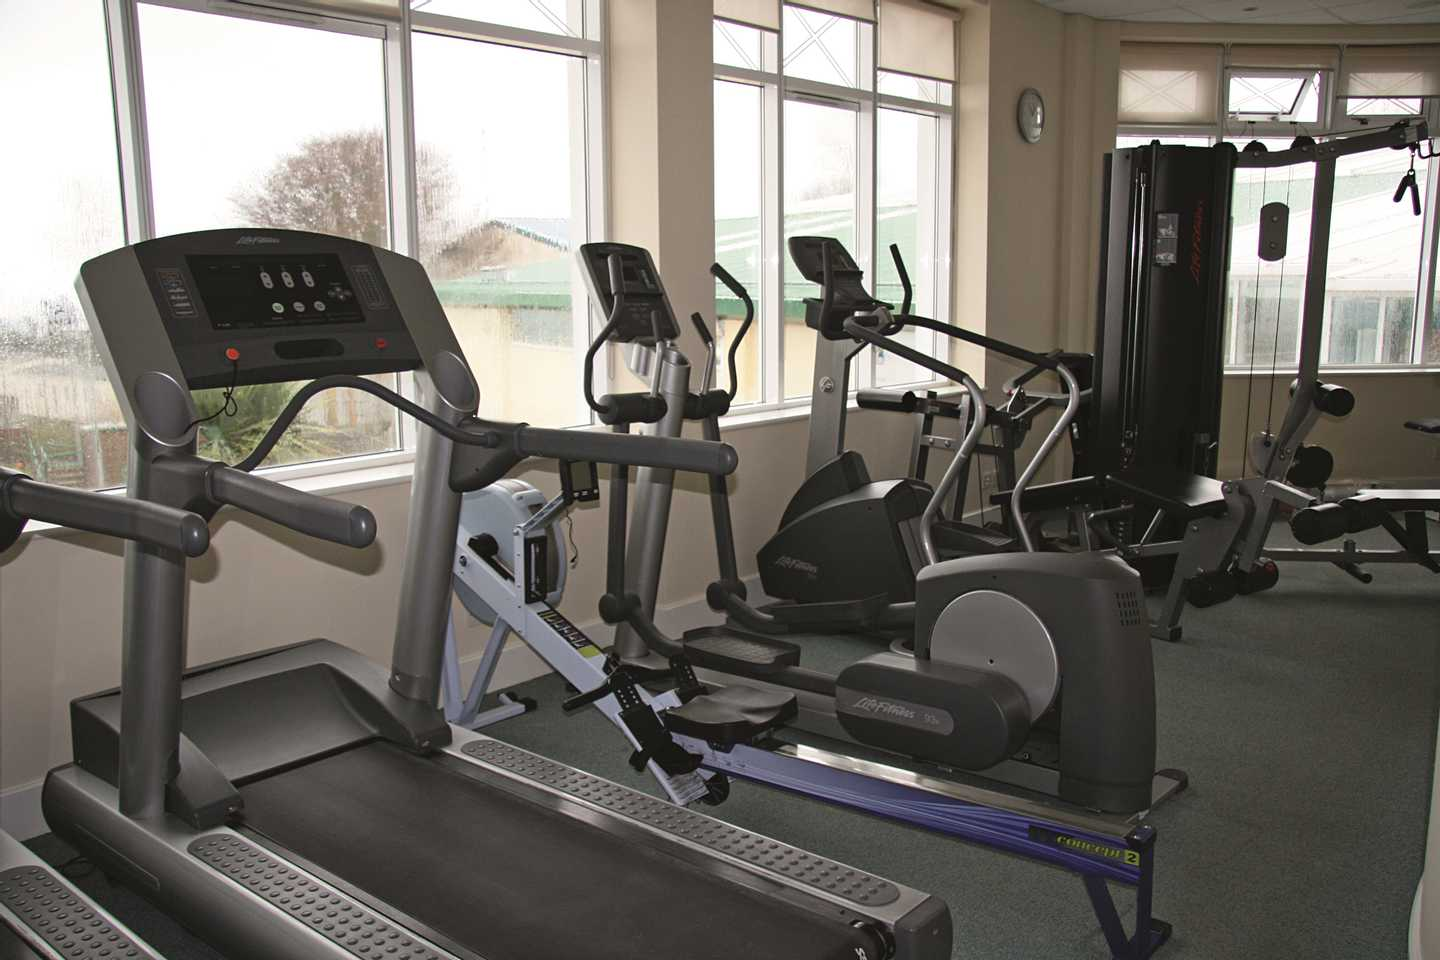 Our owners' gym equipment